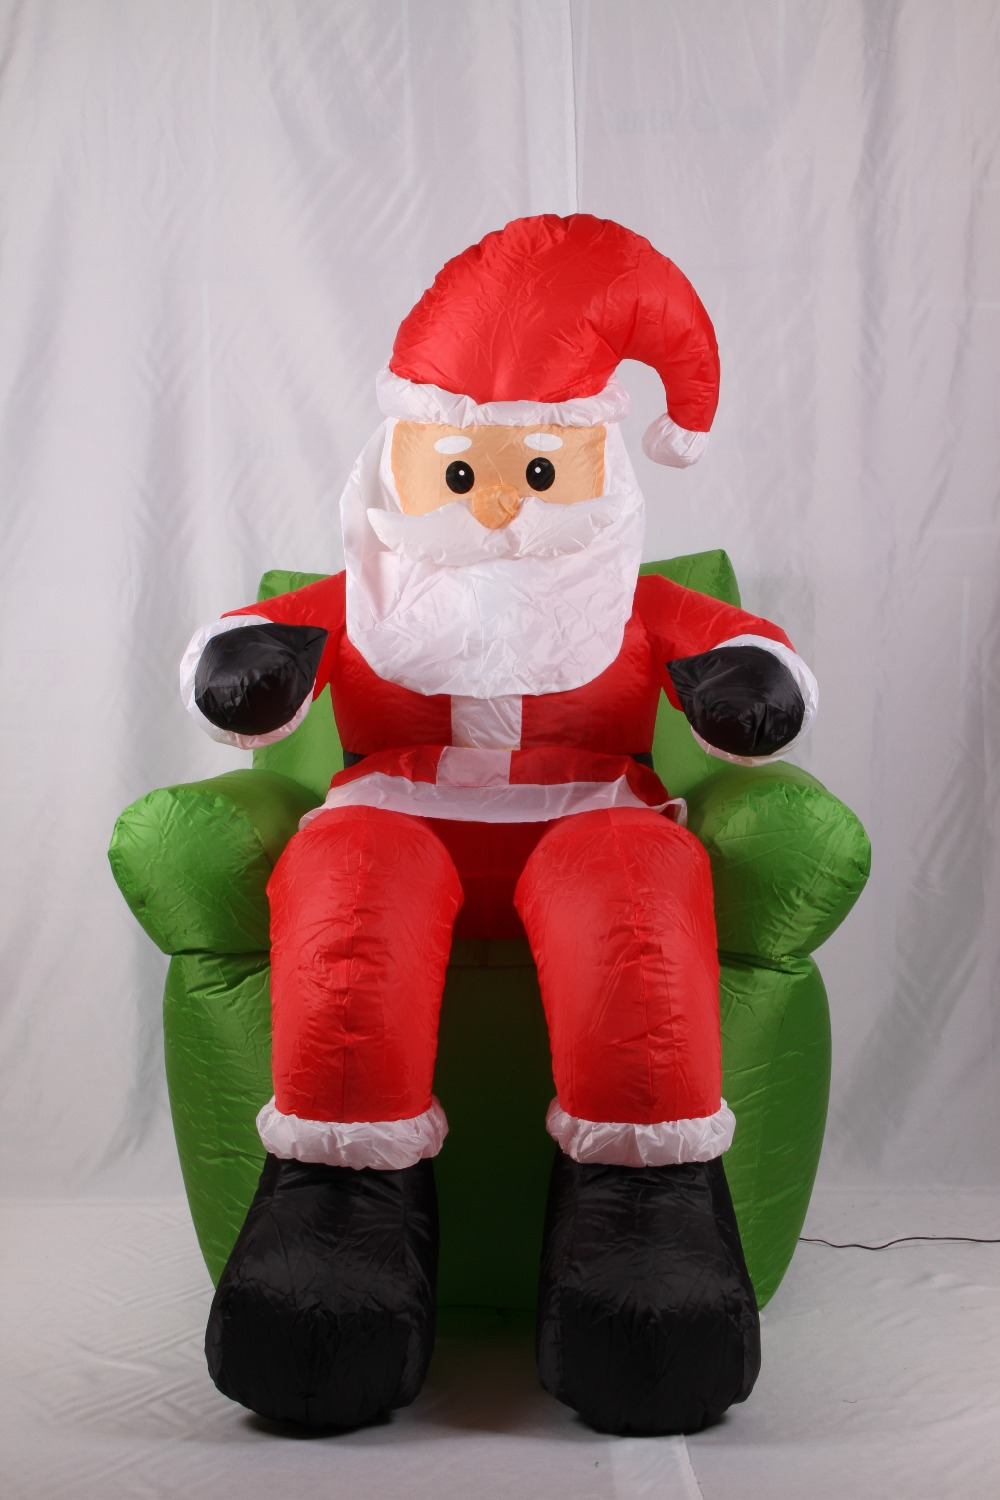 2017 Vioslite 1.8M Inflatable Christmas Santa Sitting in Sofa in High Quality for Festival Decoration 5m high big inflatable christmas santa claus climbing wall decoration 16ft high china factory direct sale festival toy